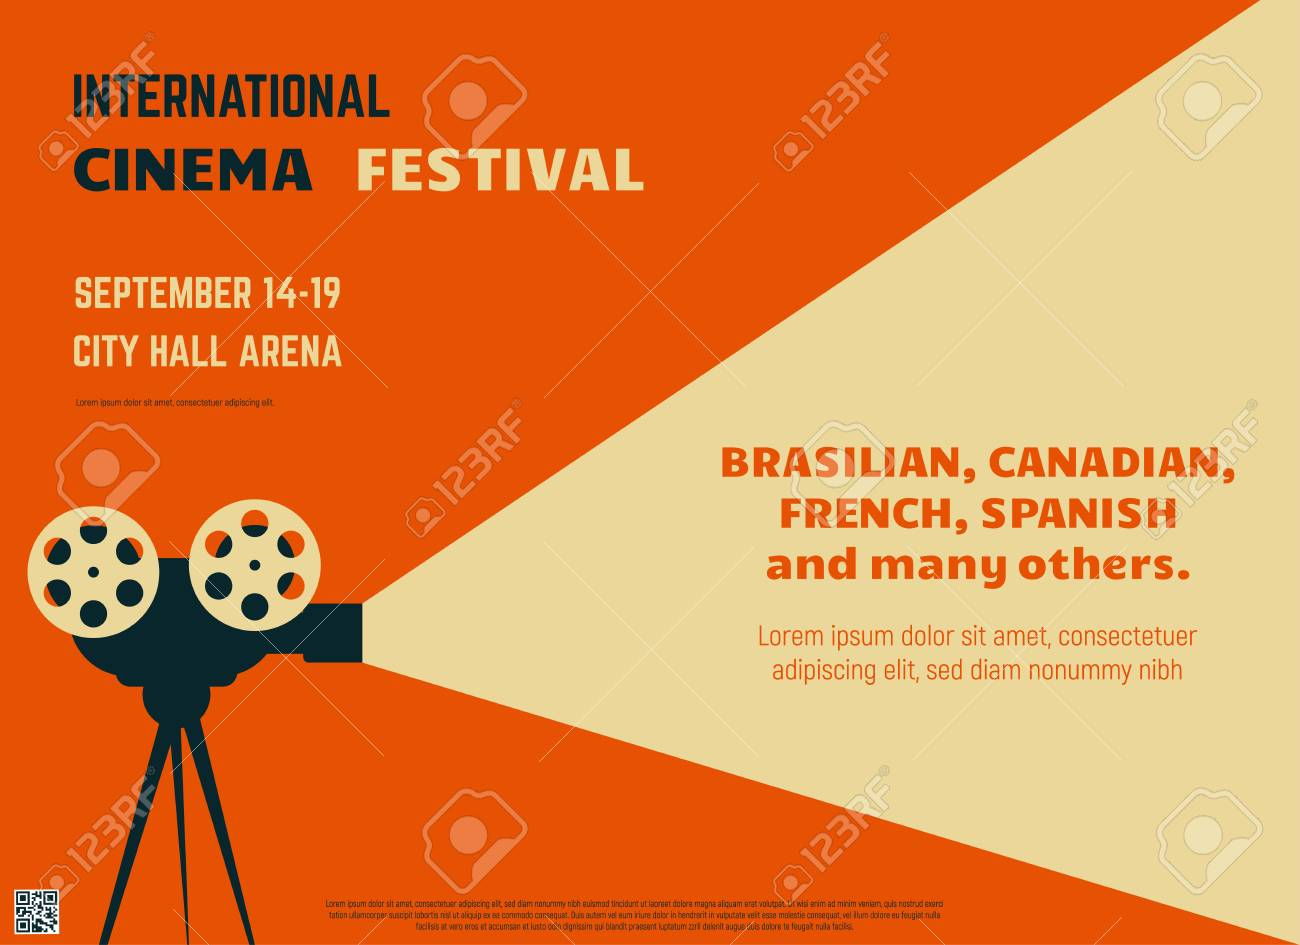 Retro Style International Movie Festival Poster Template Orange